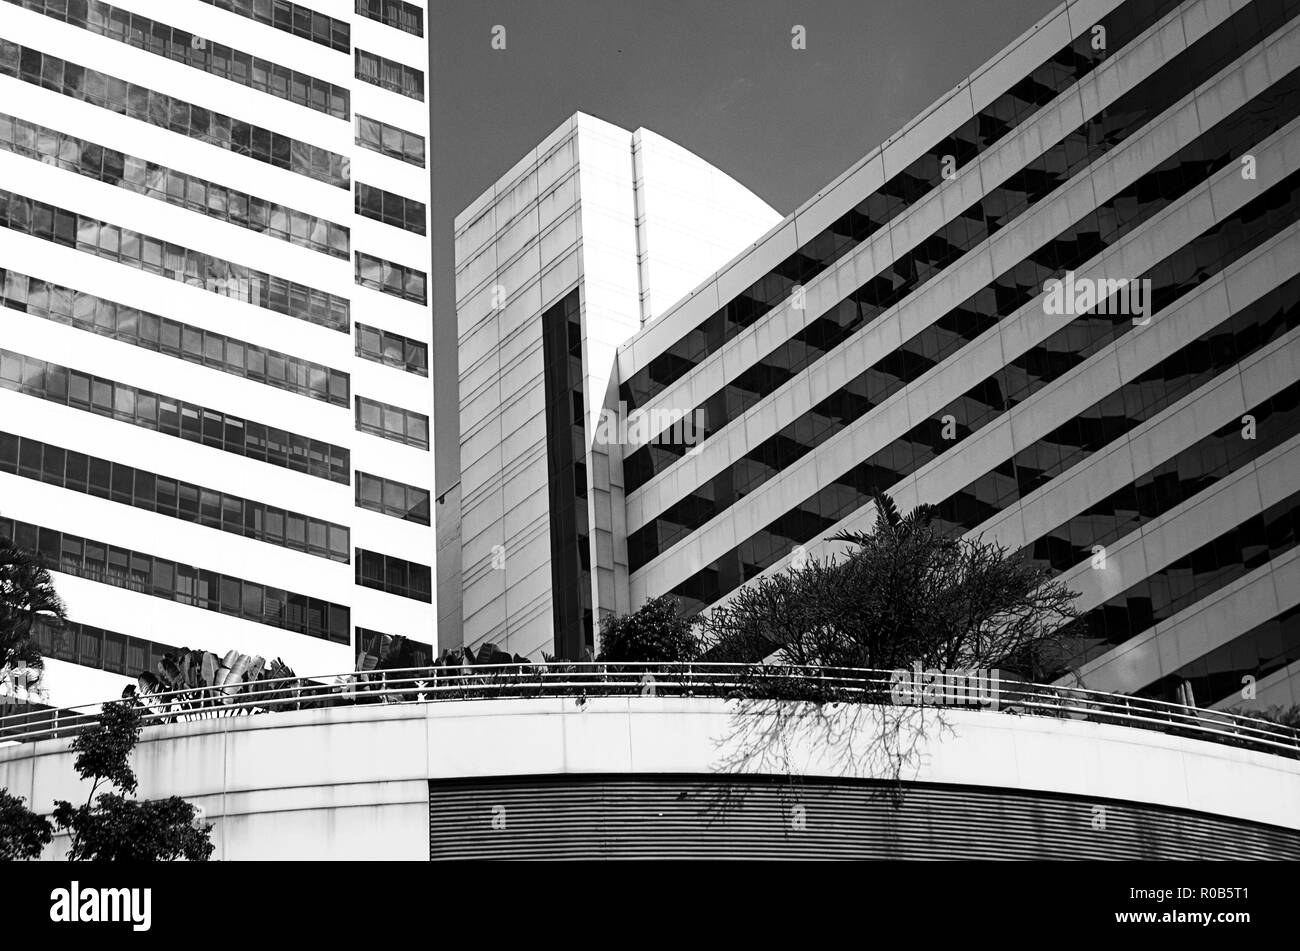 Modern and ancient architecture with a set of lines, shapes and reflections that come together to form interesting images with abstraction - Stock Image